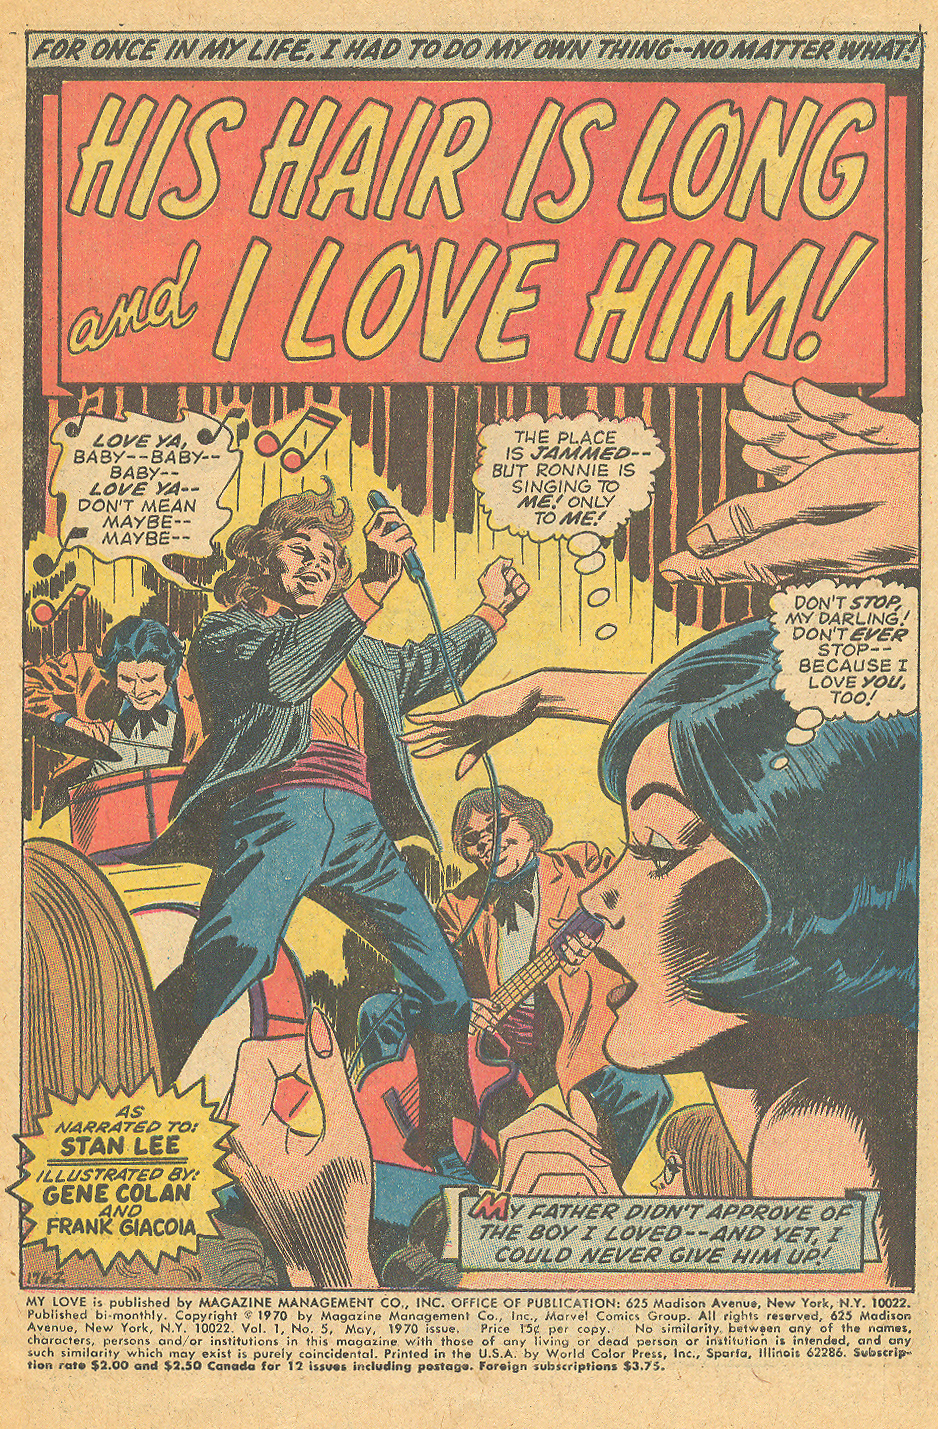 """His Hair is Long and I Love Him!"" from   My Love   #5 (May 1970) by the creative team of Stan Lee, Gene Colan, and Frank Giacoia"